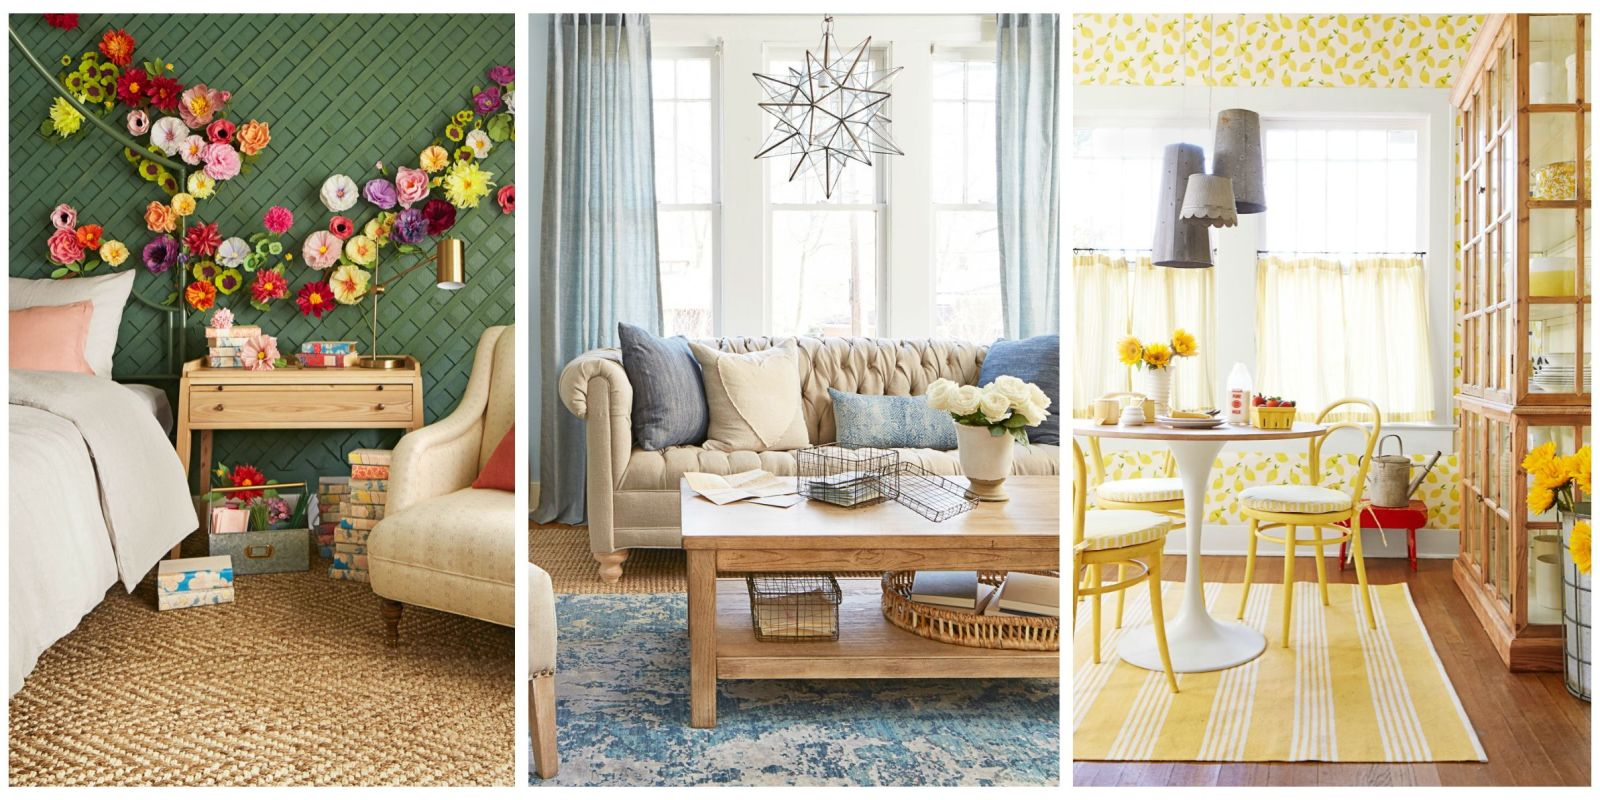 Country Inspired Living Rooms Decor 14 design ideas inspiredclassic country music songs